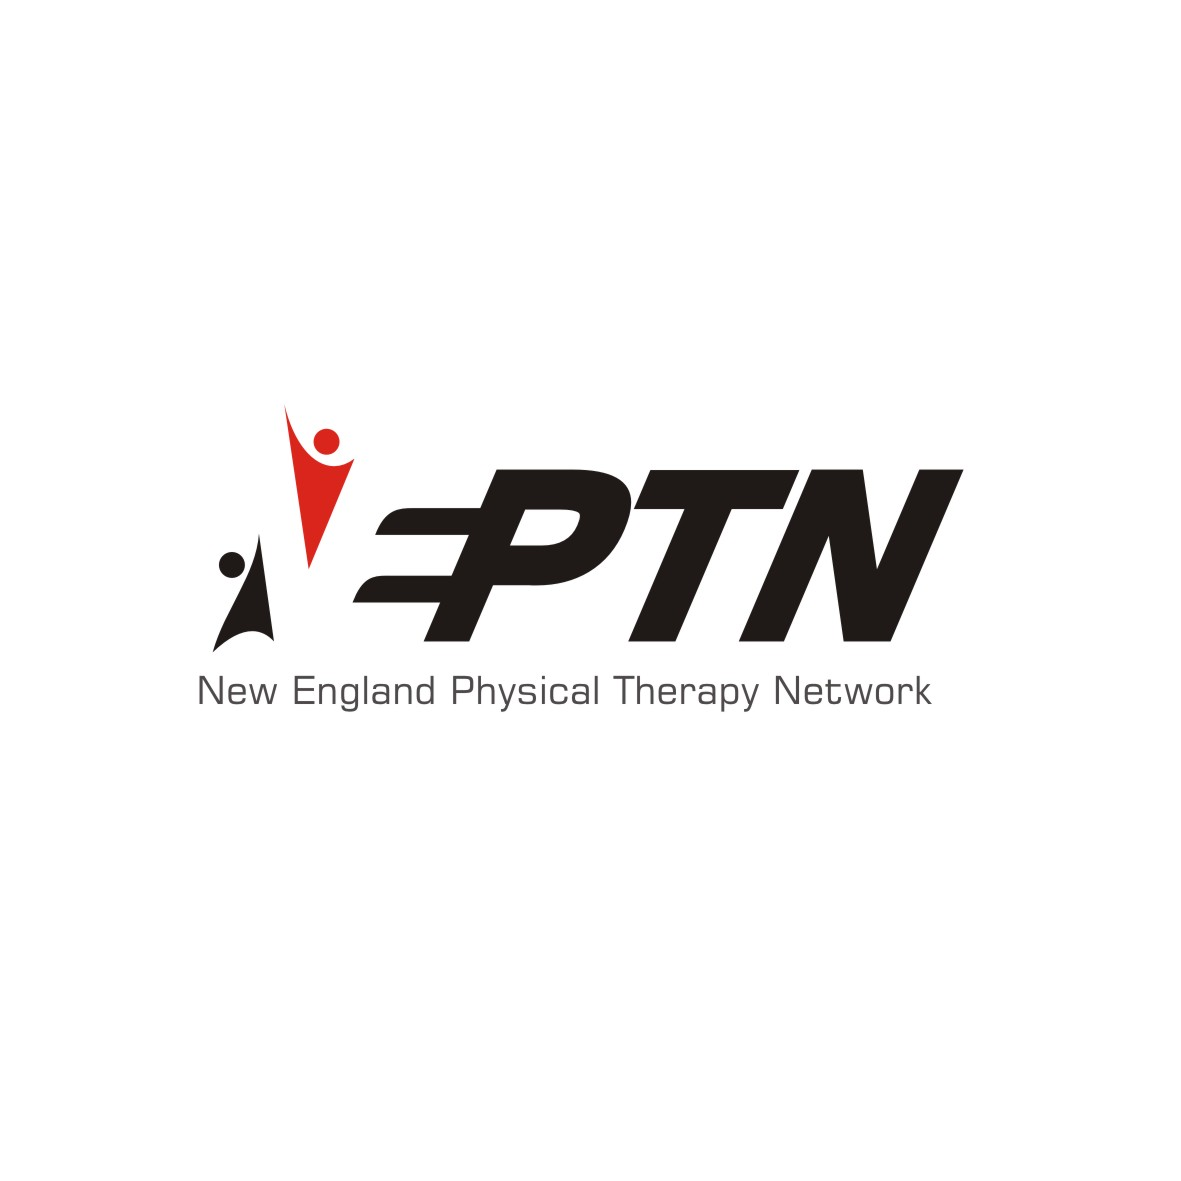 Logo Design by arteo_design - Entry No. 75 in the Logo Design Contest Fun Logo Design for NEPTN - New England Physical Therapy Network.